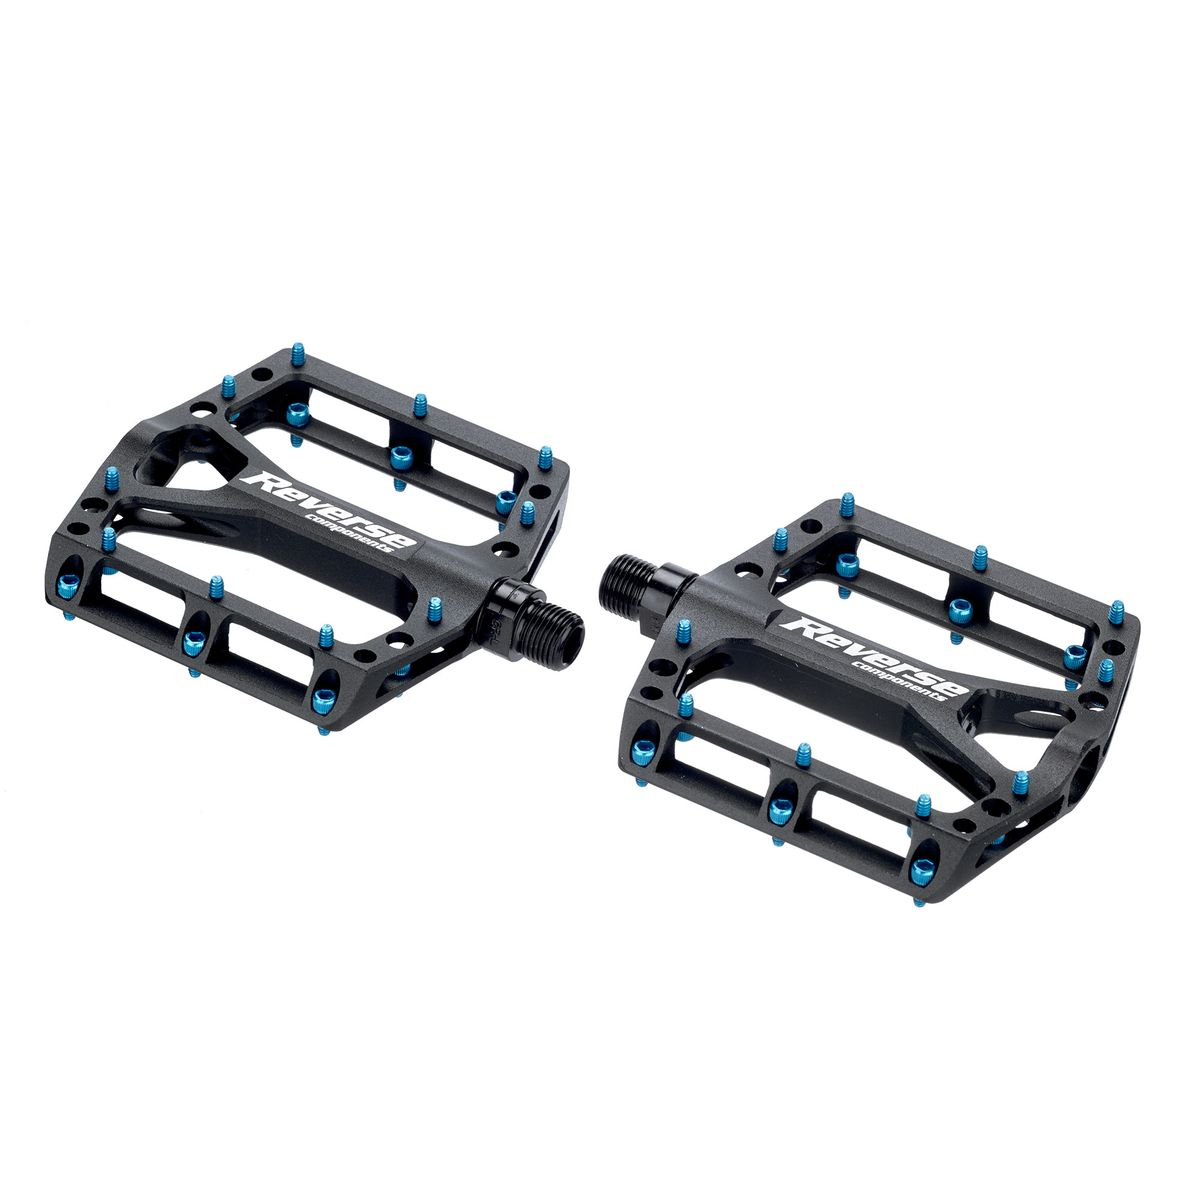 REVERSE Black ONE pedals